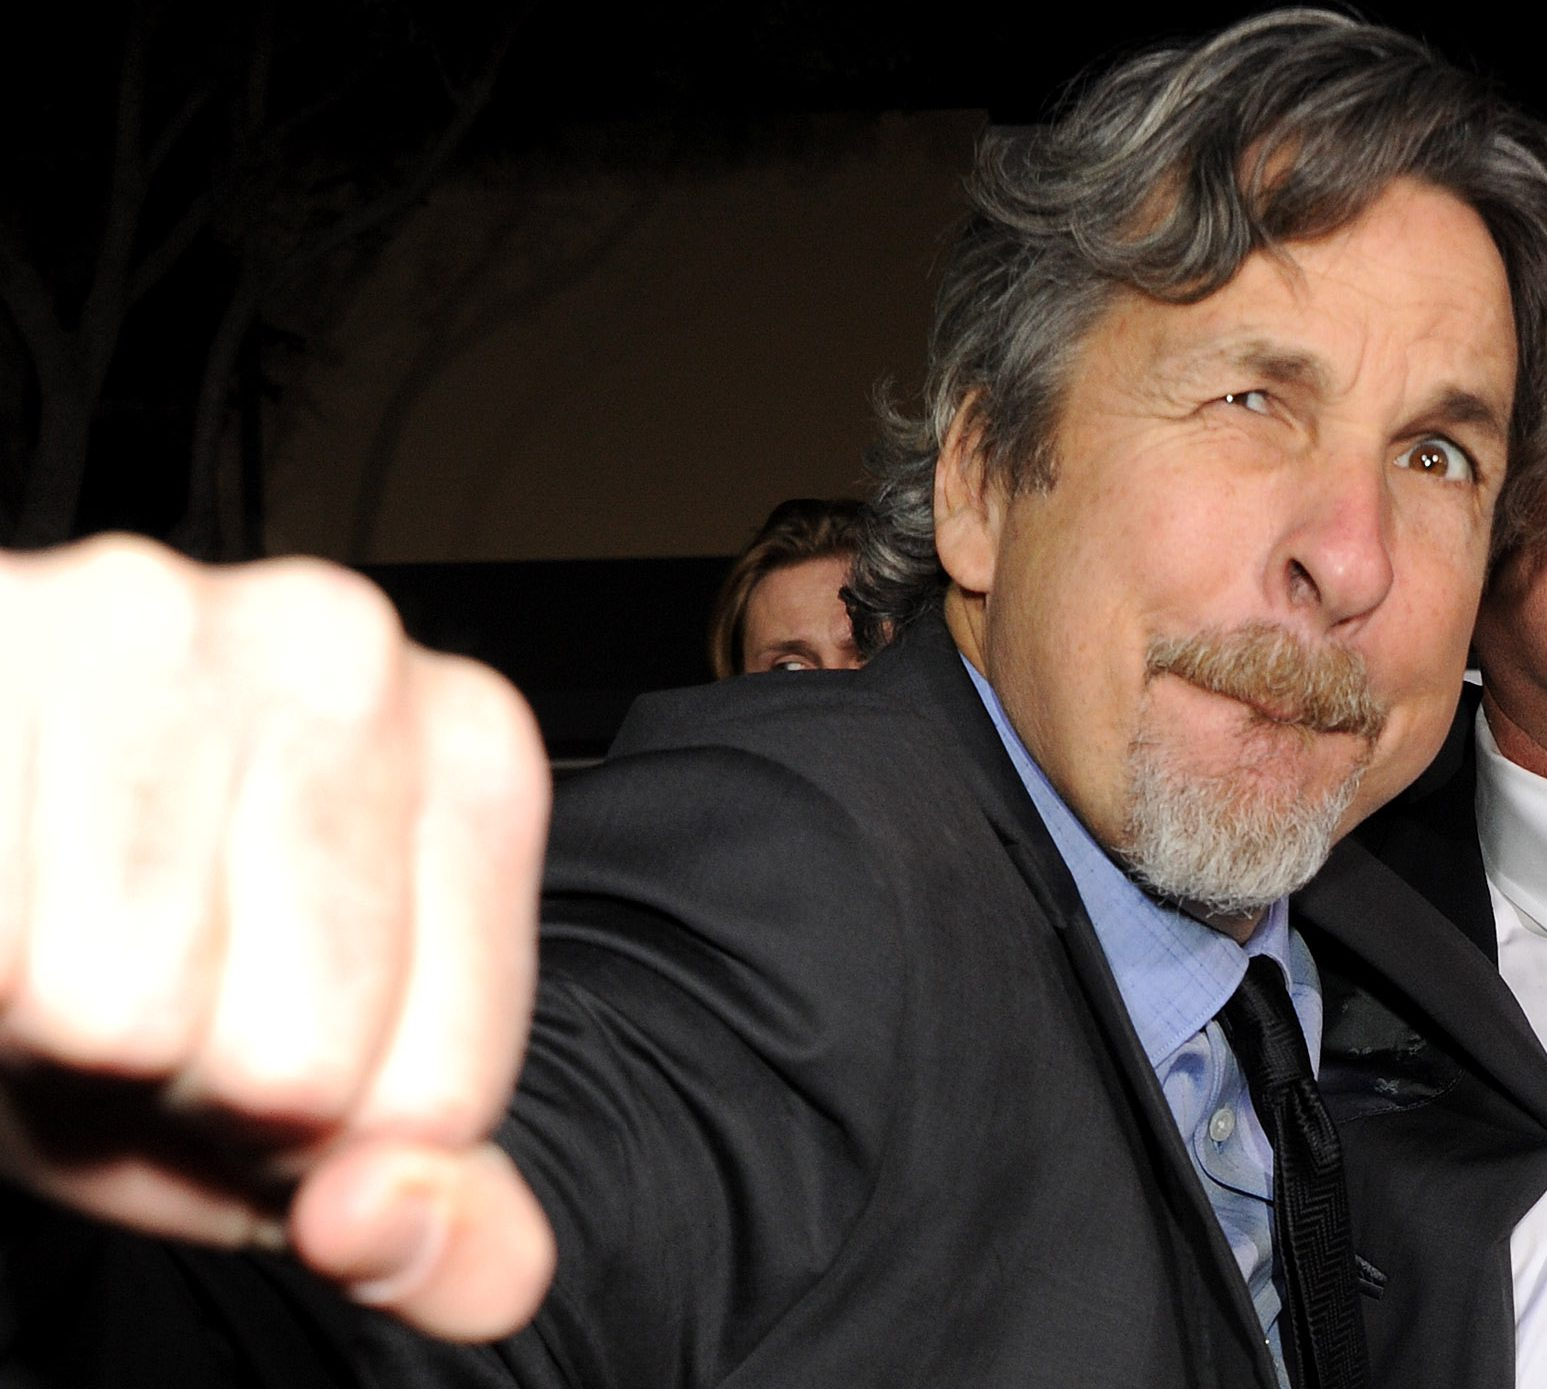 Peter Farrelly and Bobby Farrelly'Dumb and Dumber To' film premiere, Los Angeles, America - 03 Nov 2014